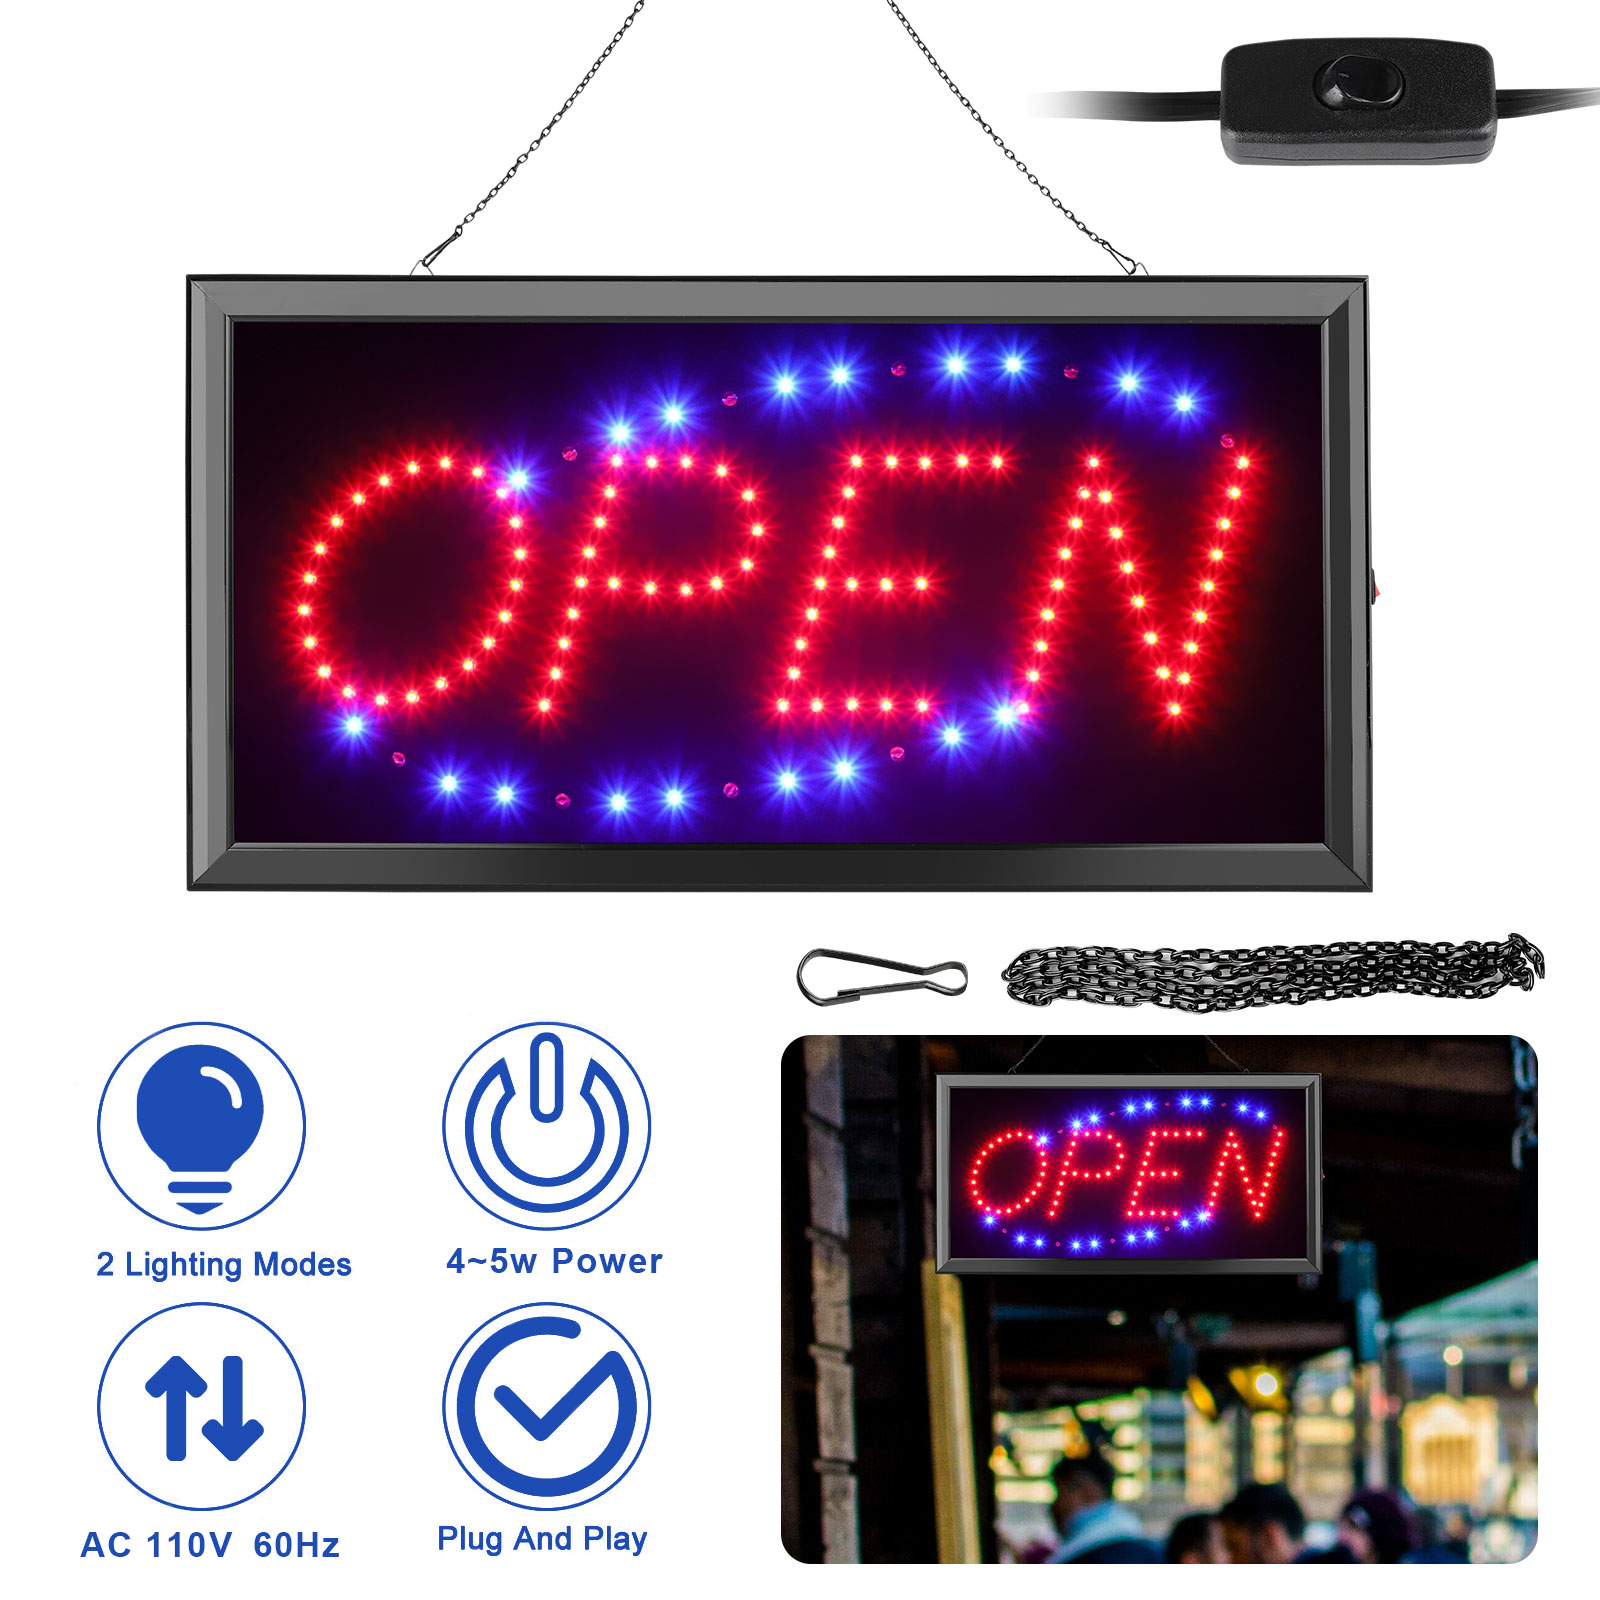 LED Business Open Sign Include Business Hours Sign Advertisement Board Electric Display Sign,19 X 10 Inch DK/_SJ Open LED Sign